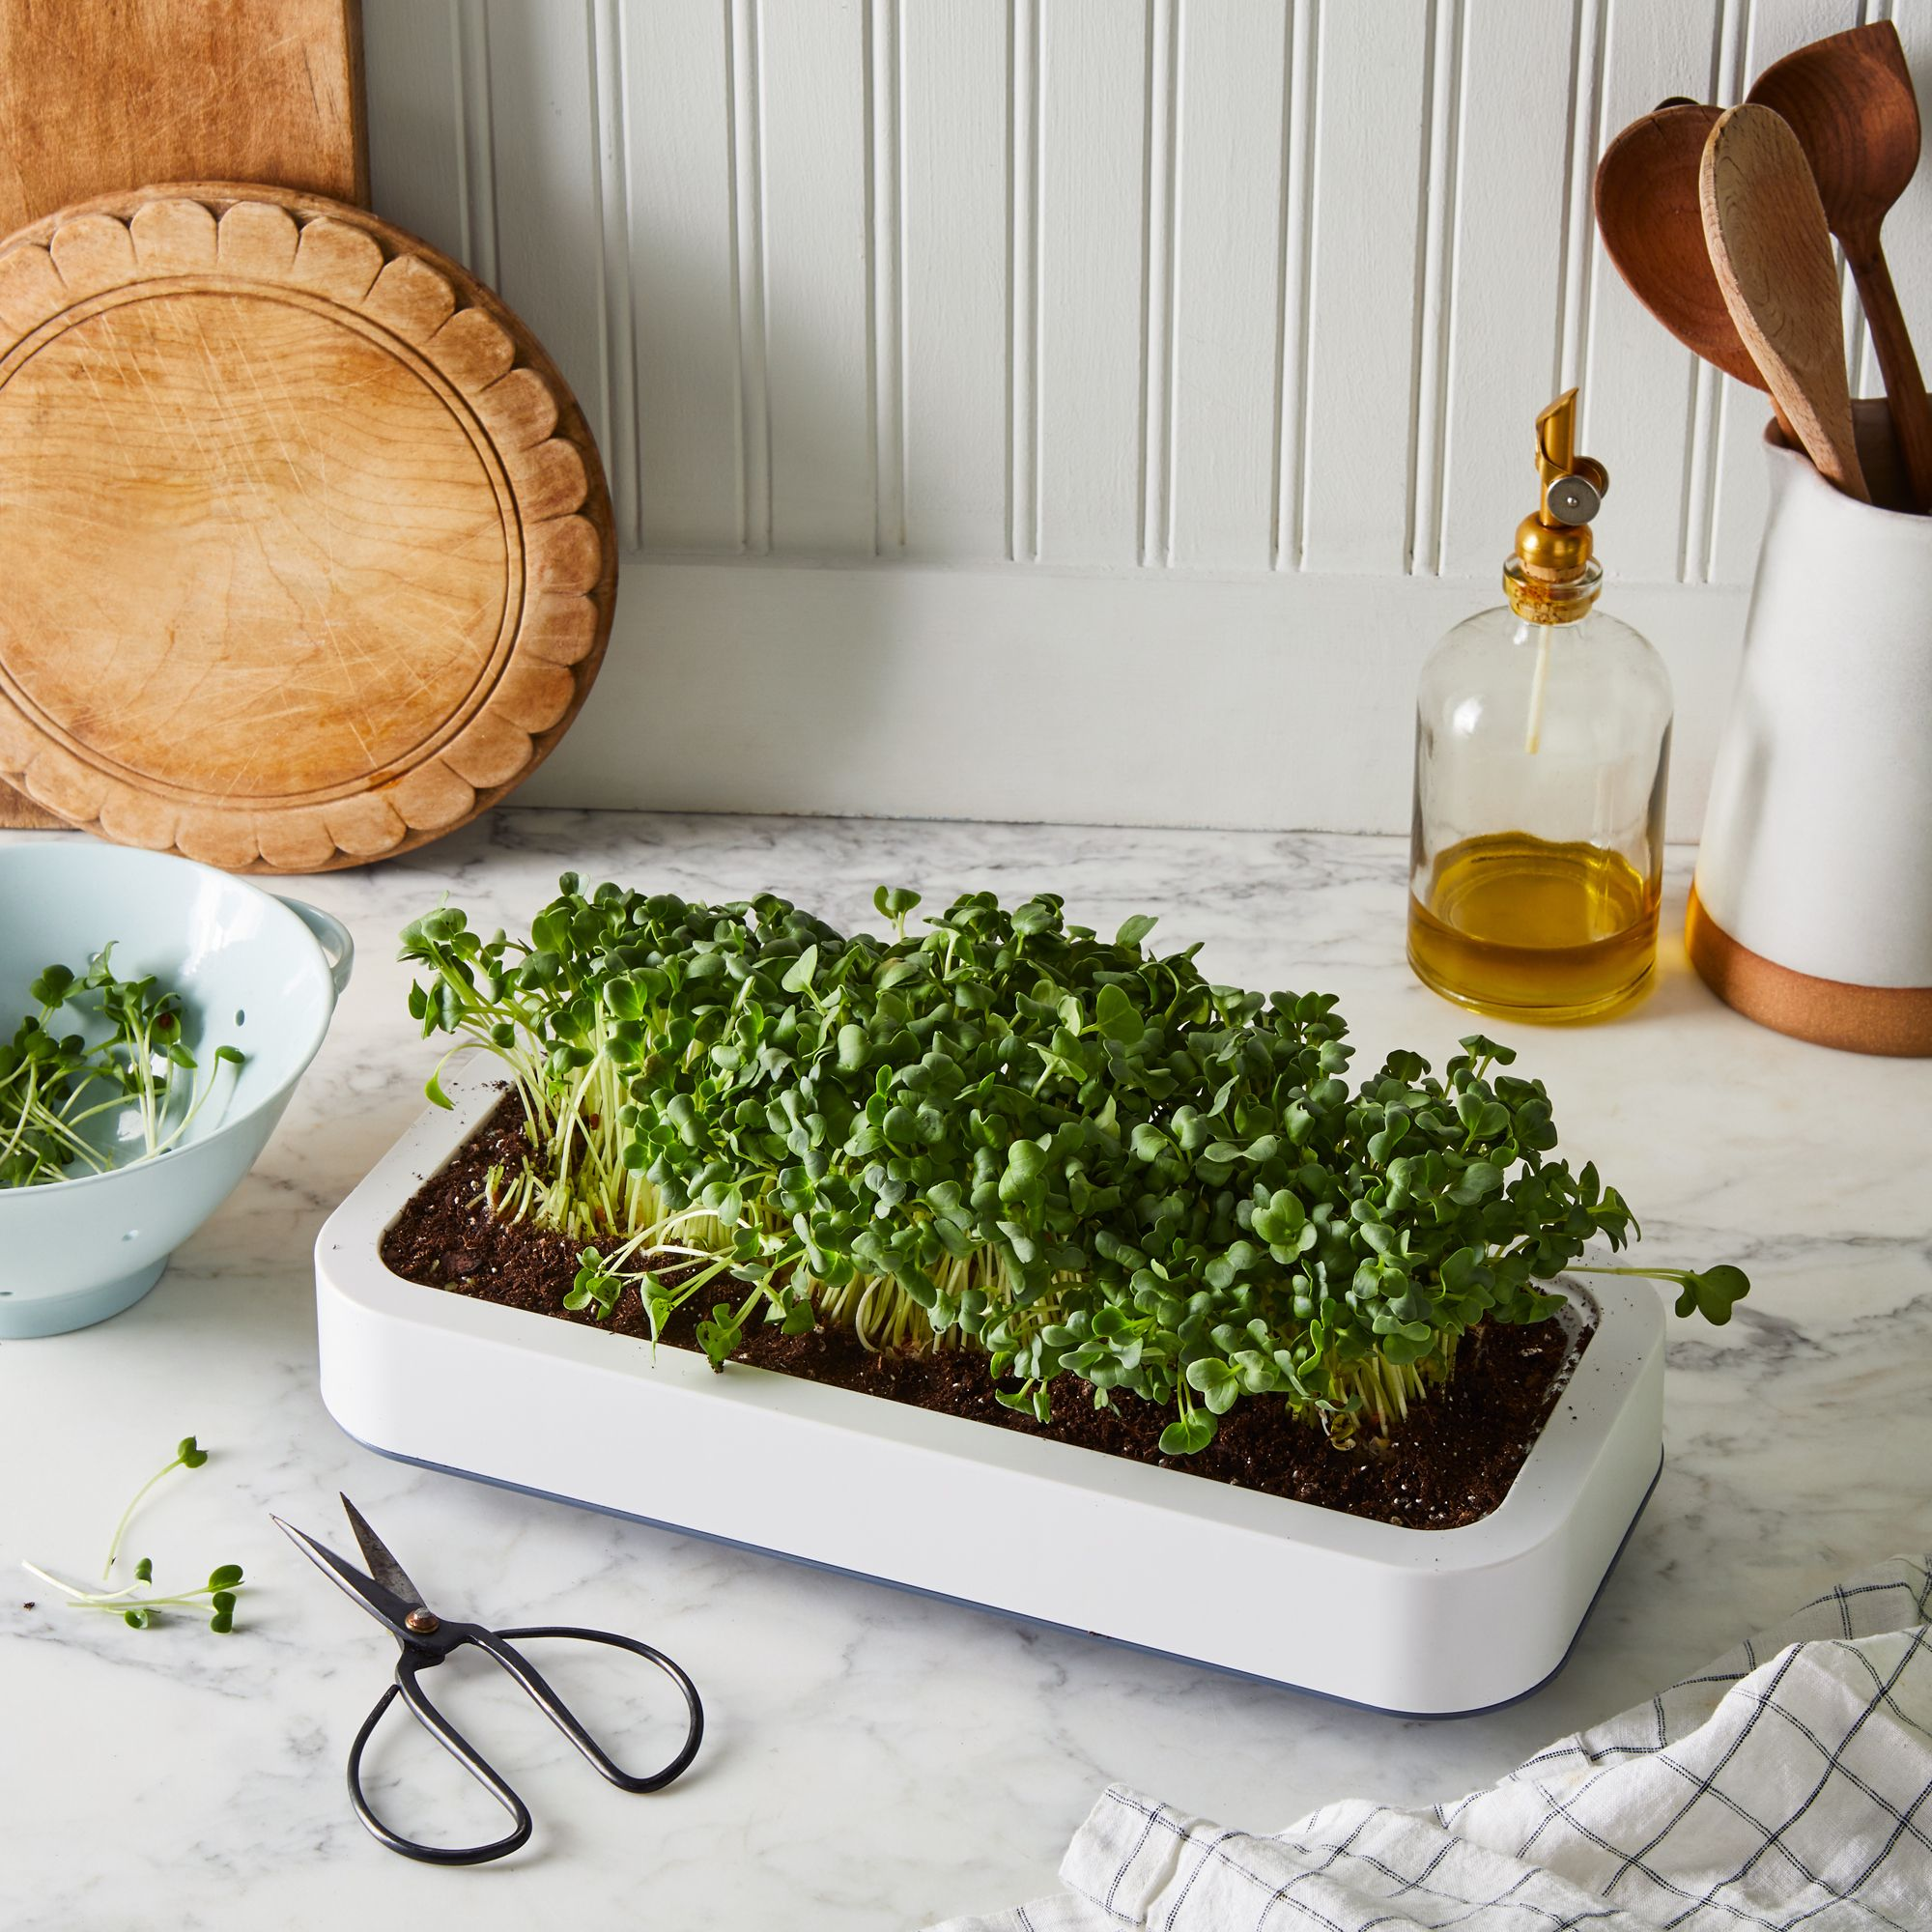 Chef'n Countertop Microgreen Grower